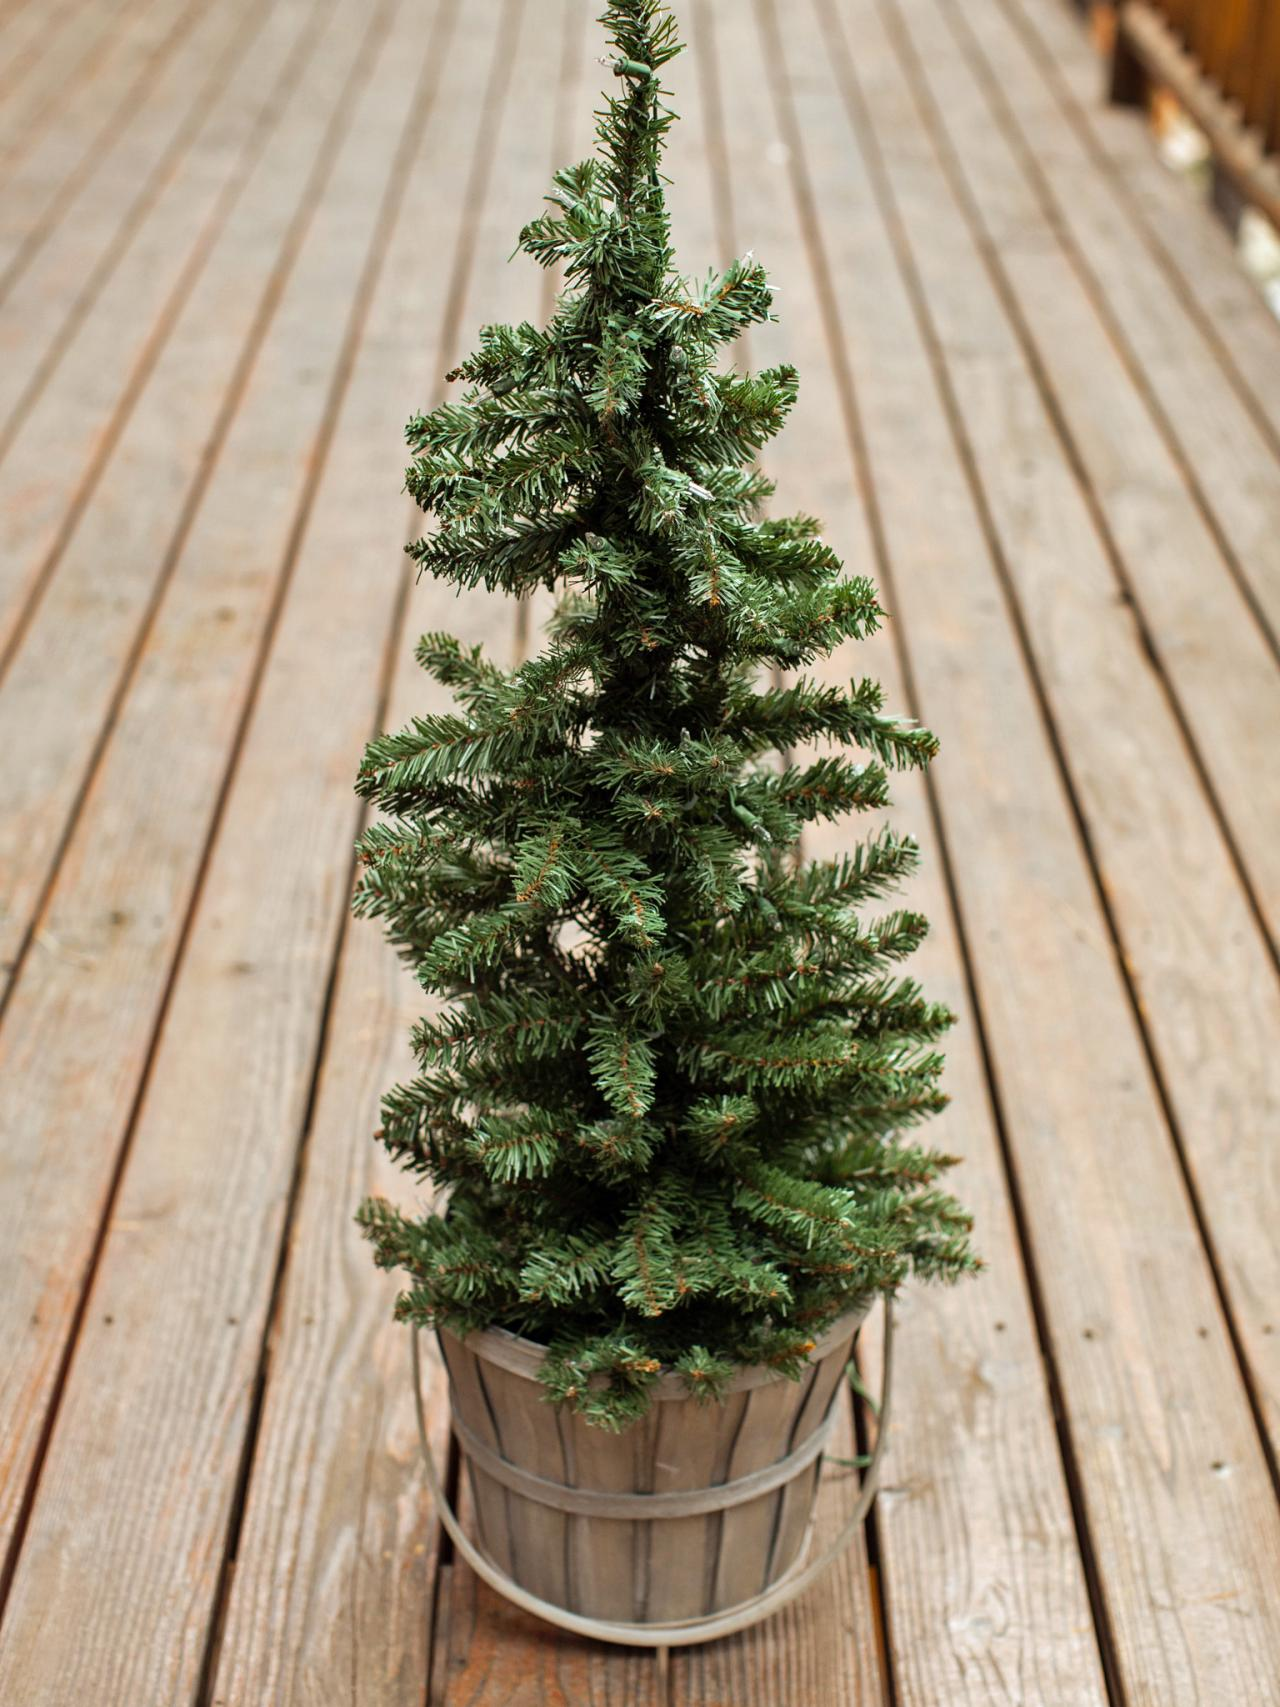 swap out container - Mini Live Christmas Trees